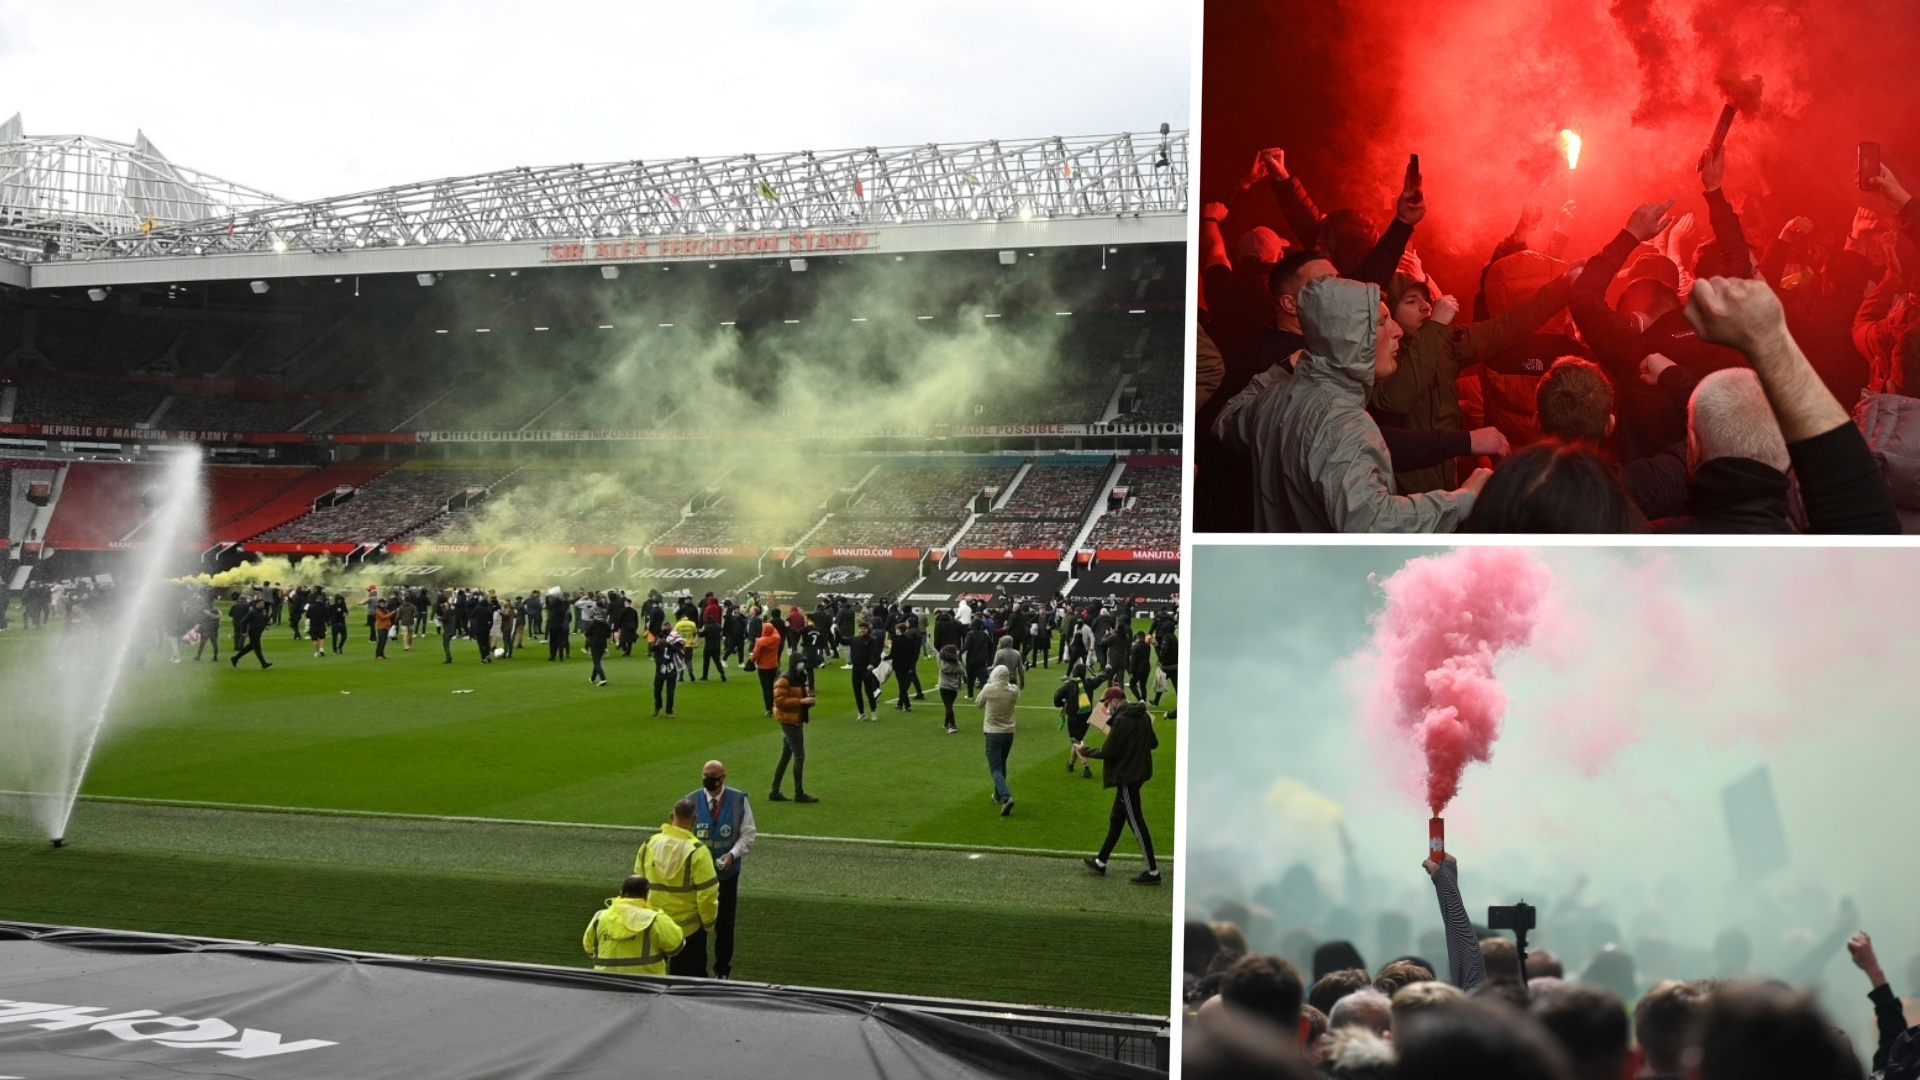 In pictures: Manchester United fan protest and Old Trafford pitch invasion forces Liverpool game postponement